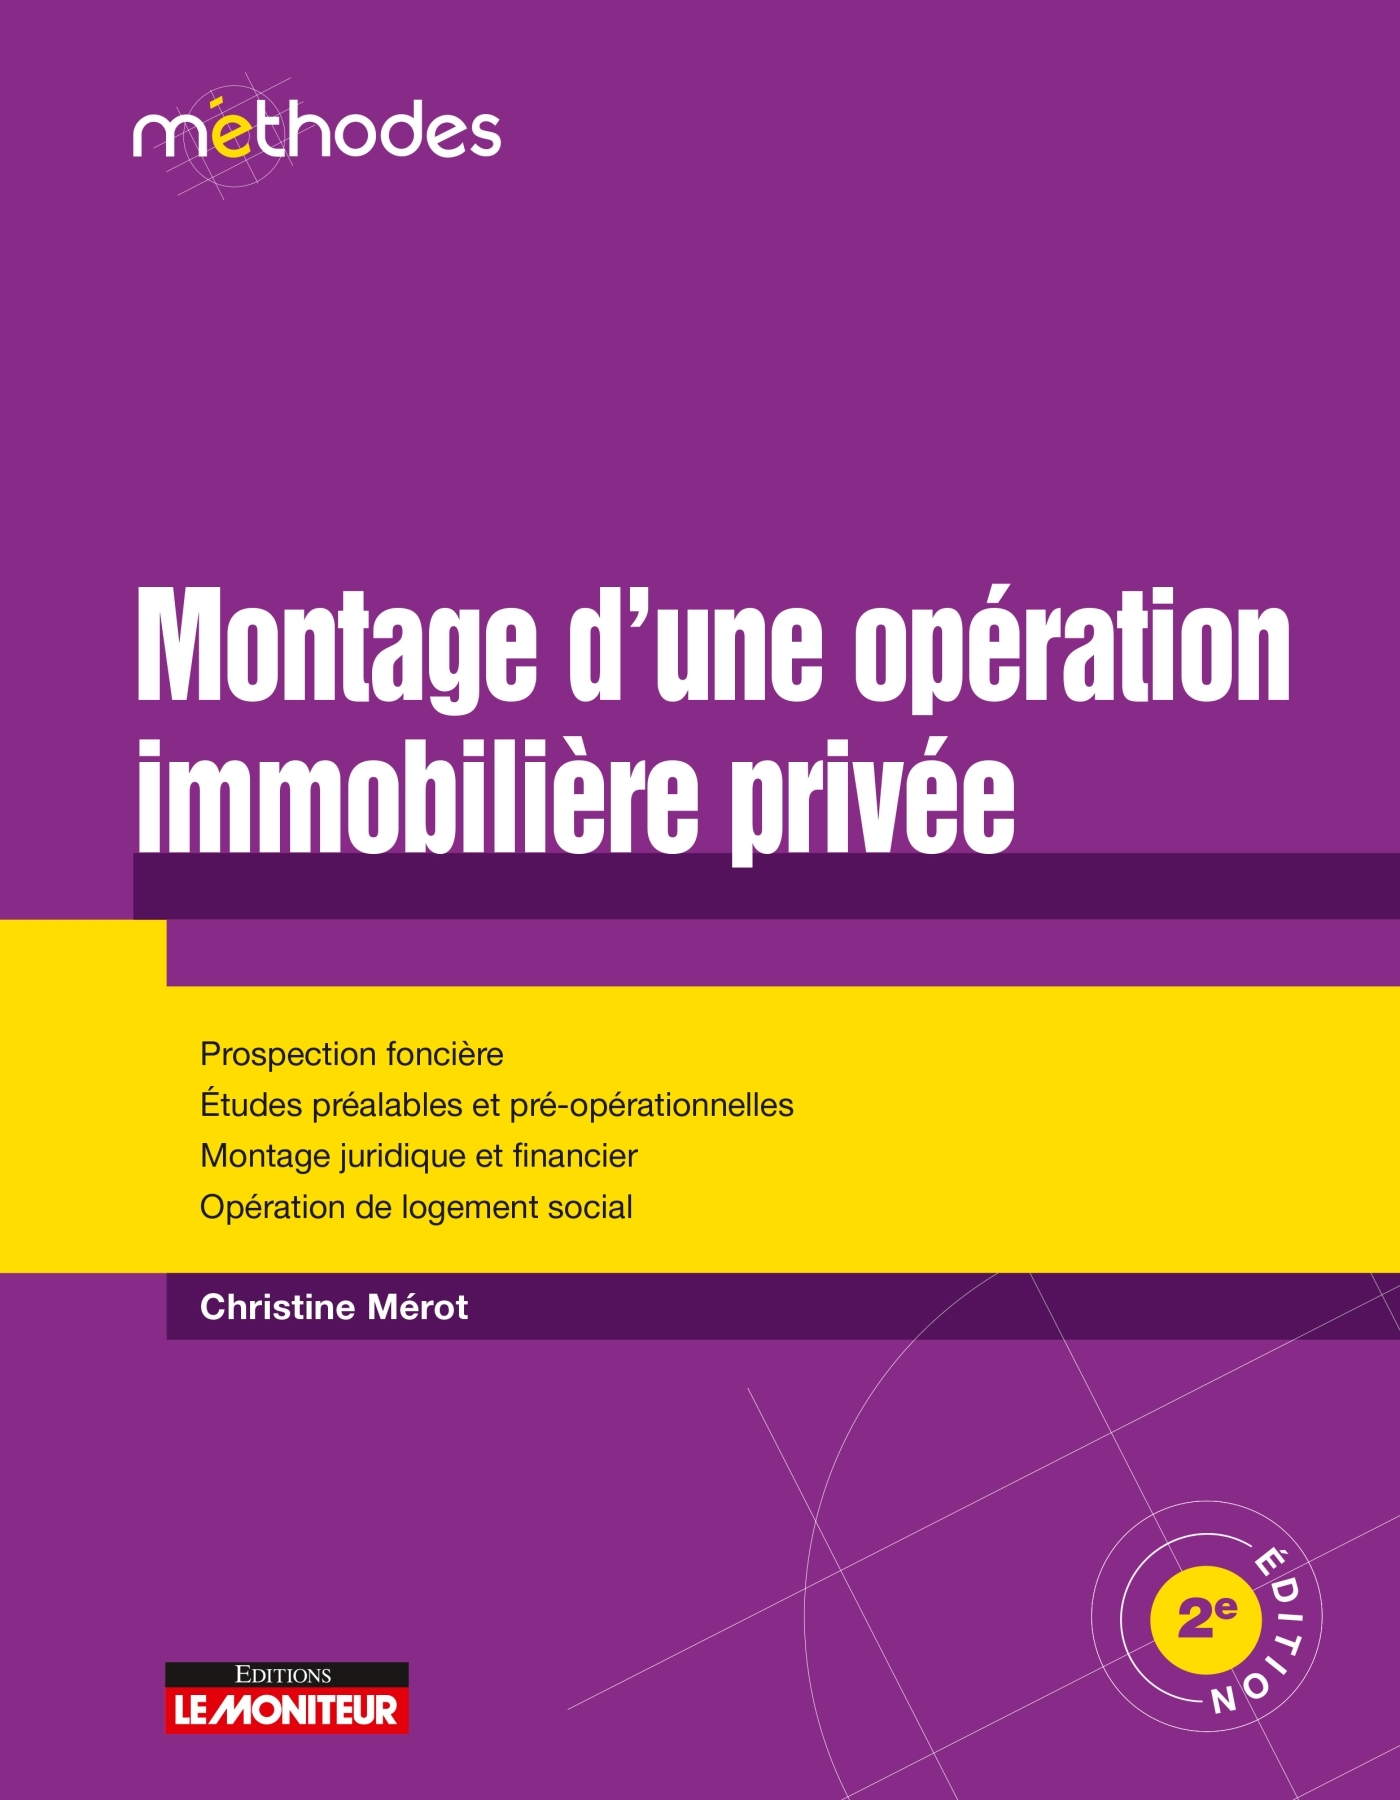 MONTAGE D'UNE OPERATION IMMOBILIERE PRIVEE - PROSPECTION FONCIERE - ETUDES PREALABLES ET PRE-OPERATI